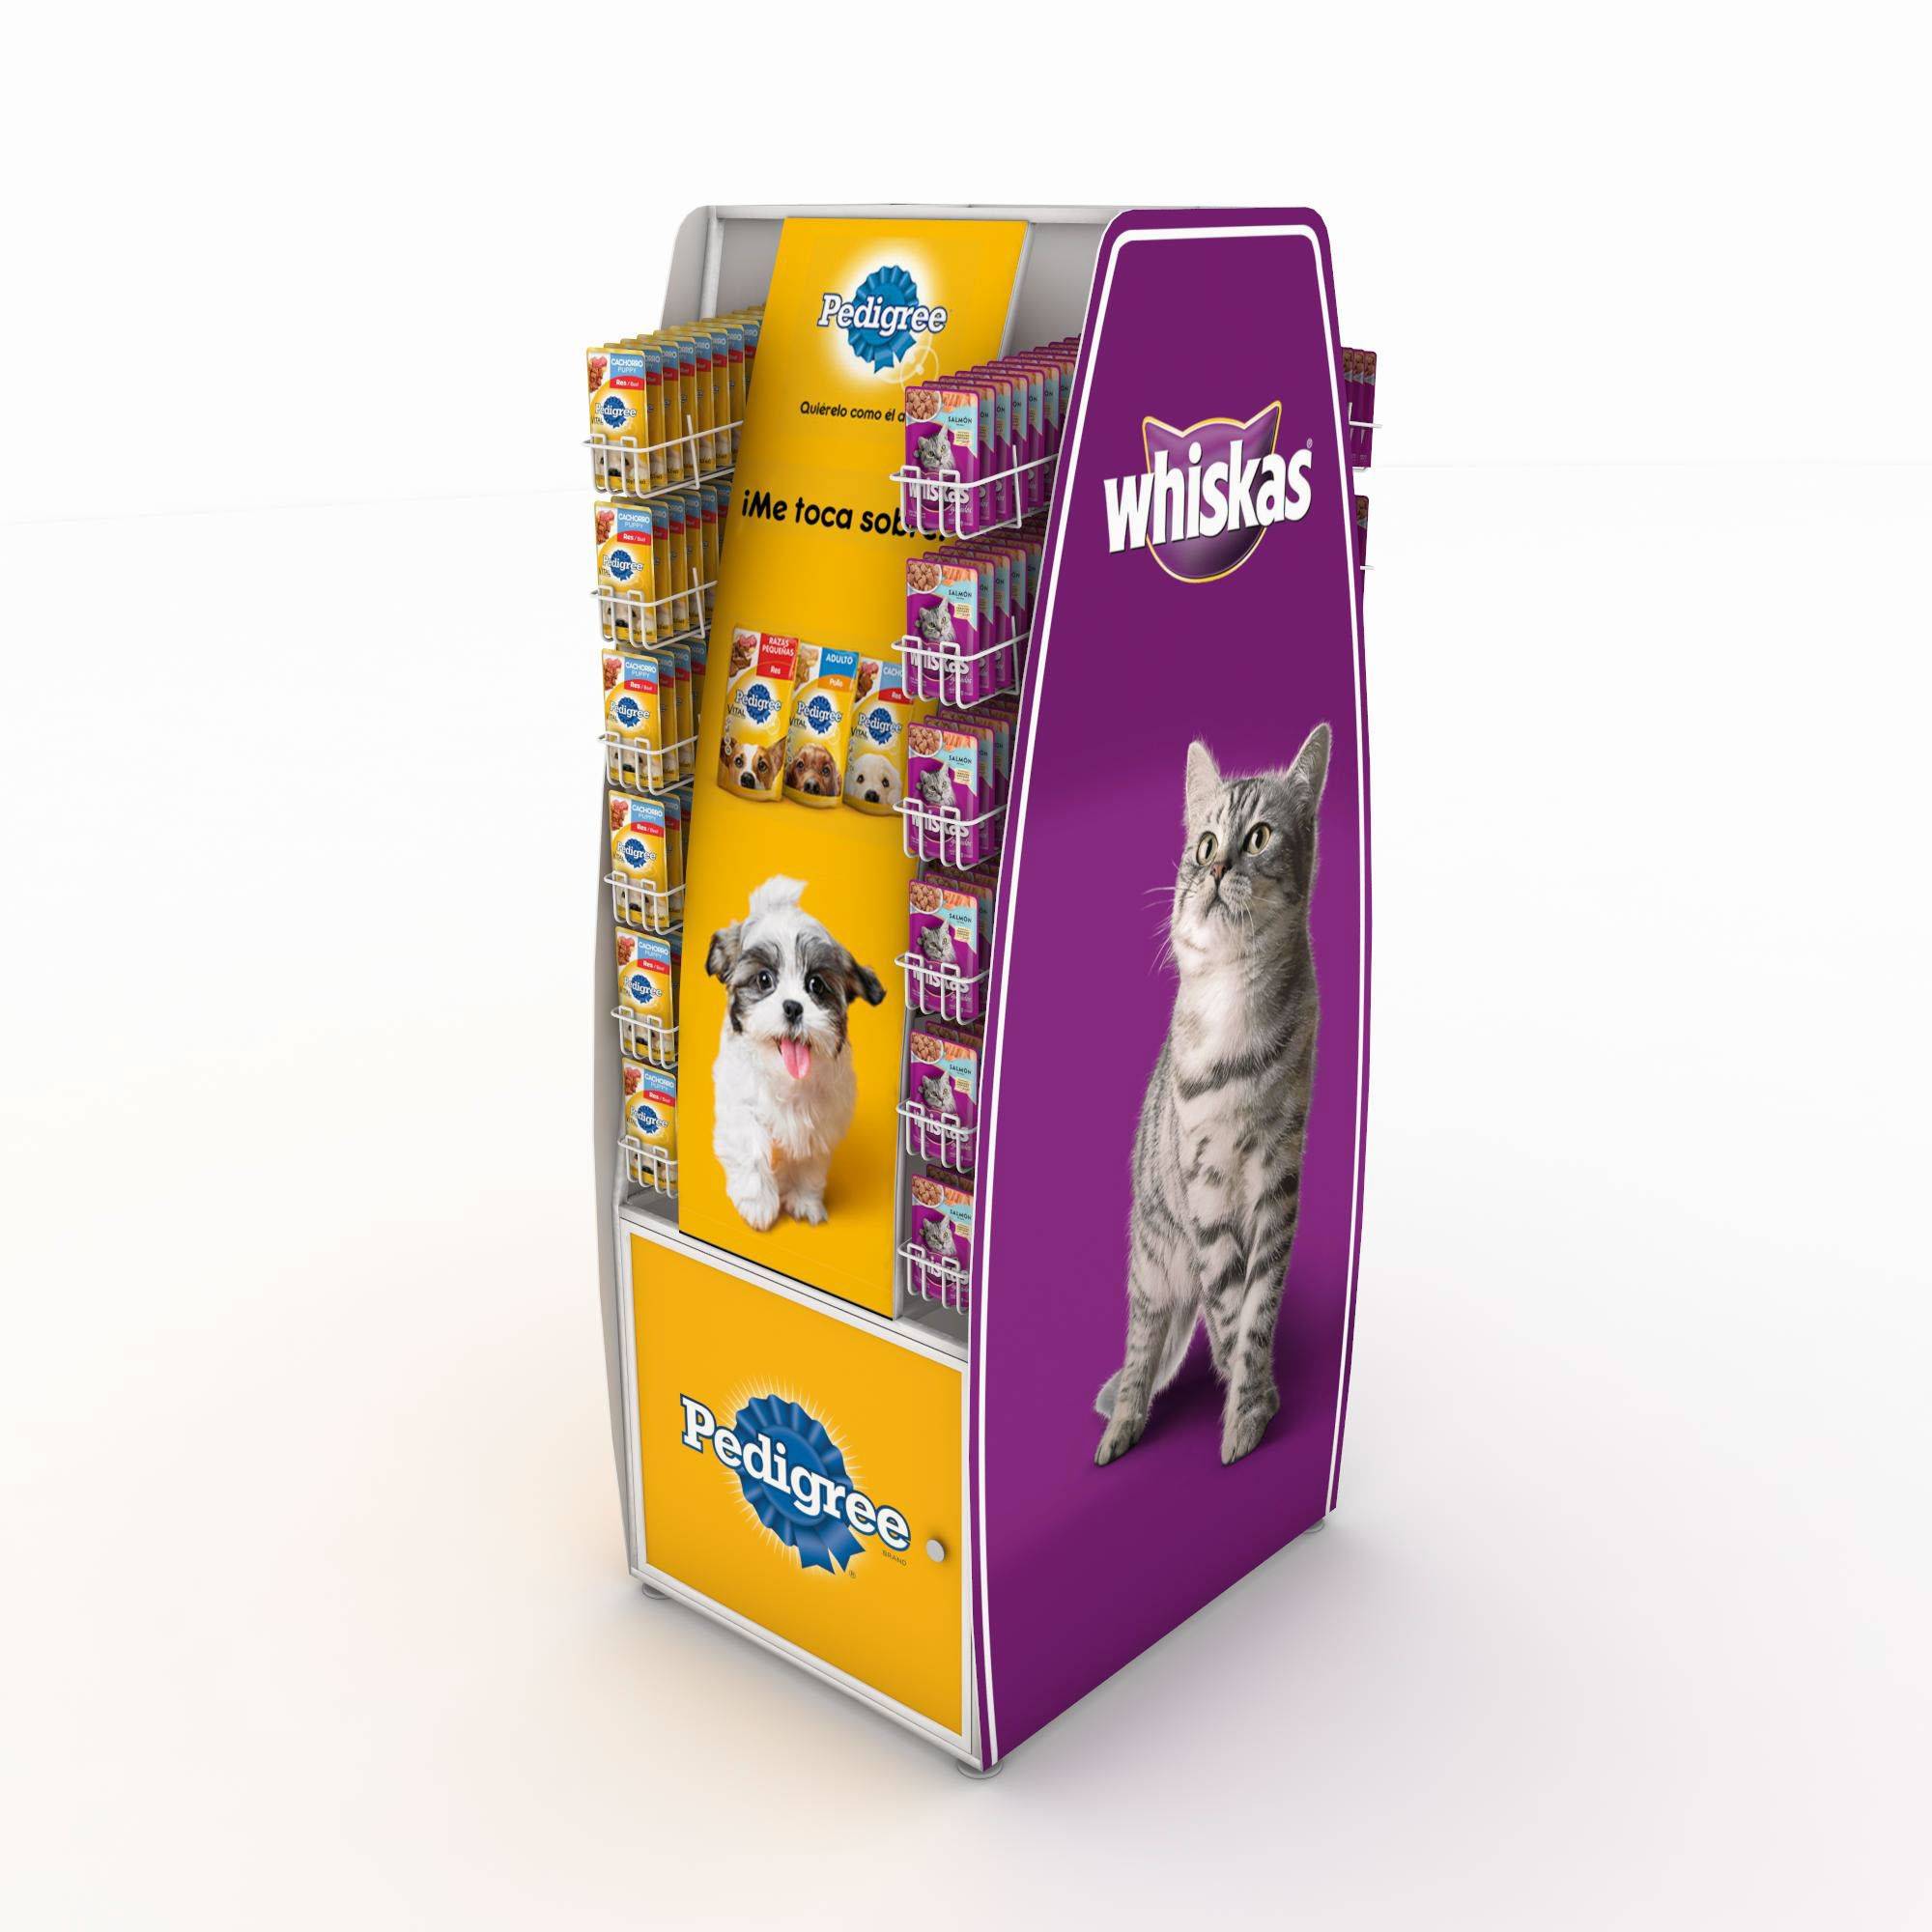 Check out this behance project floorstand pedigree